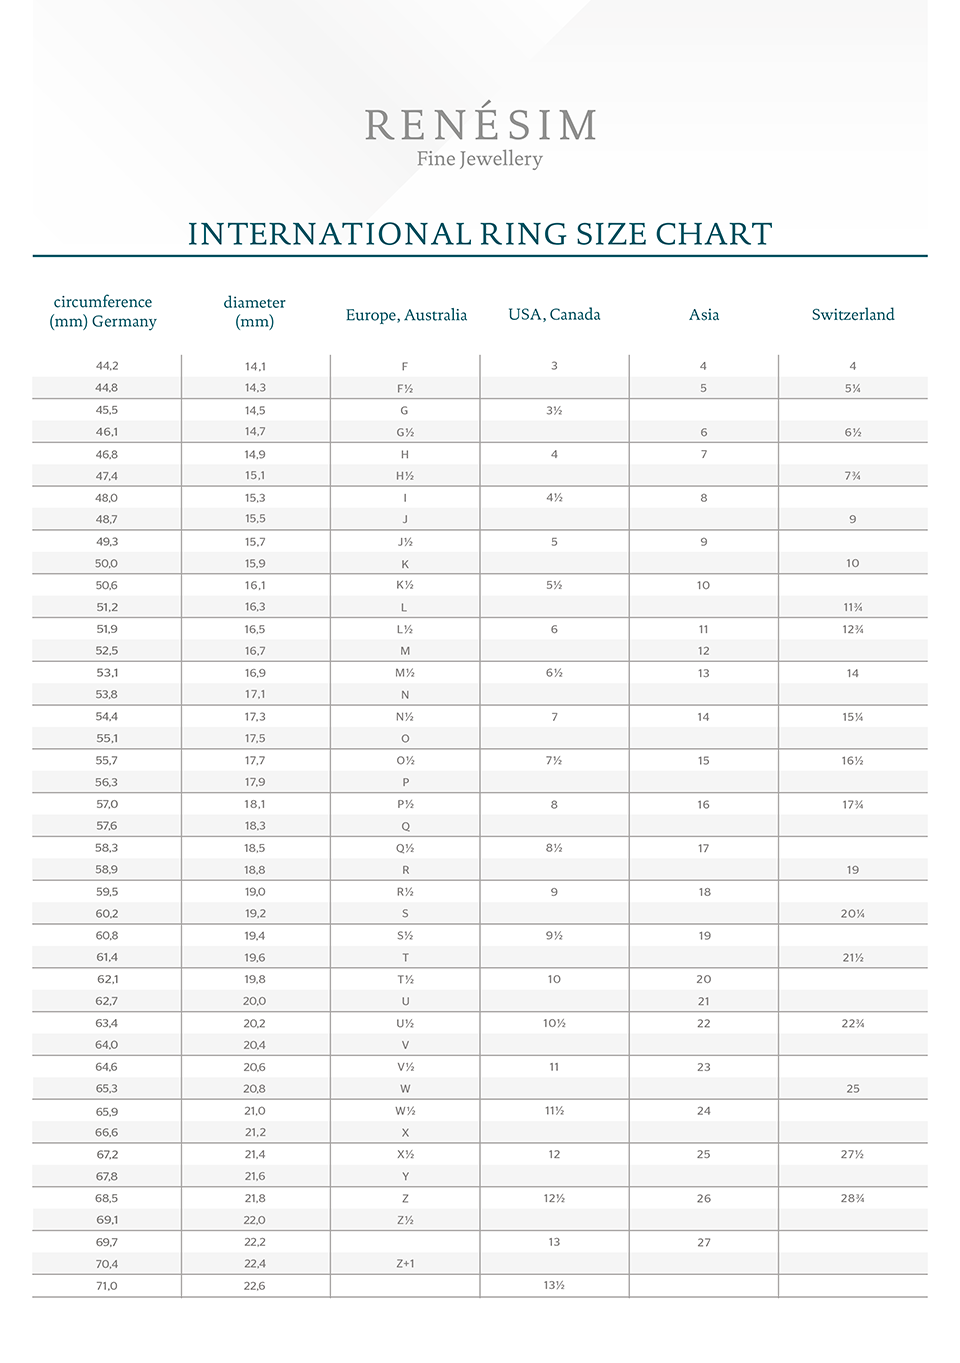 International Ring Size Chart